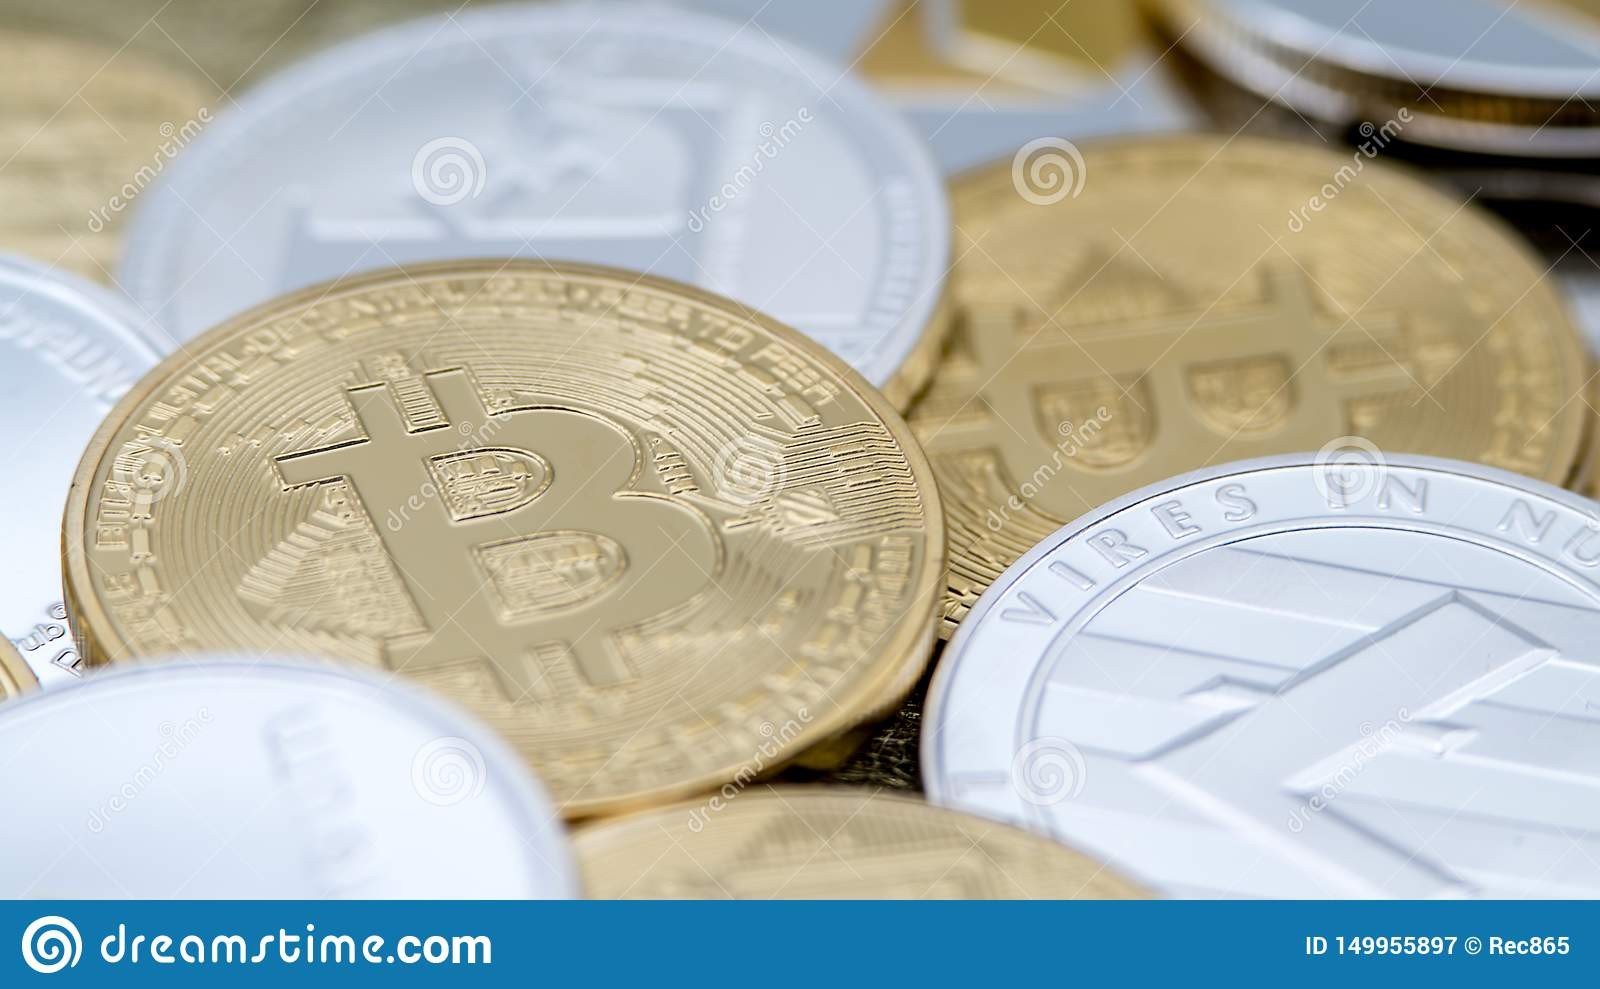 Diferent physical metal currency background. Cryptocurrency coin